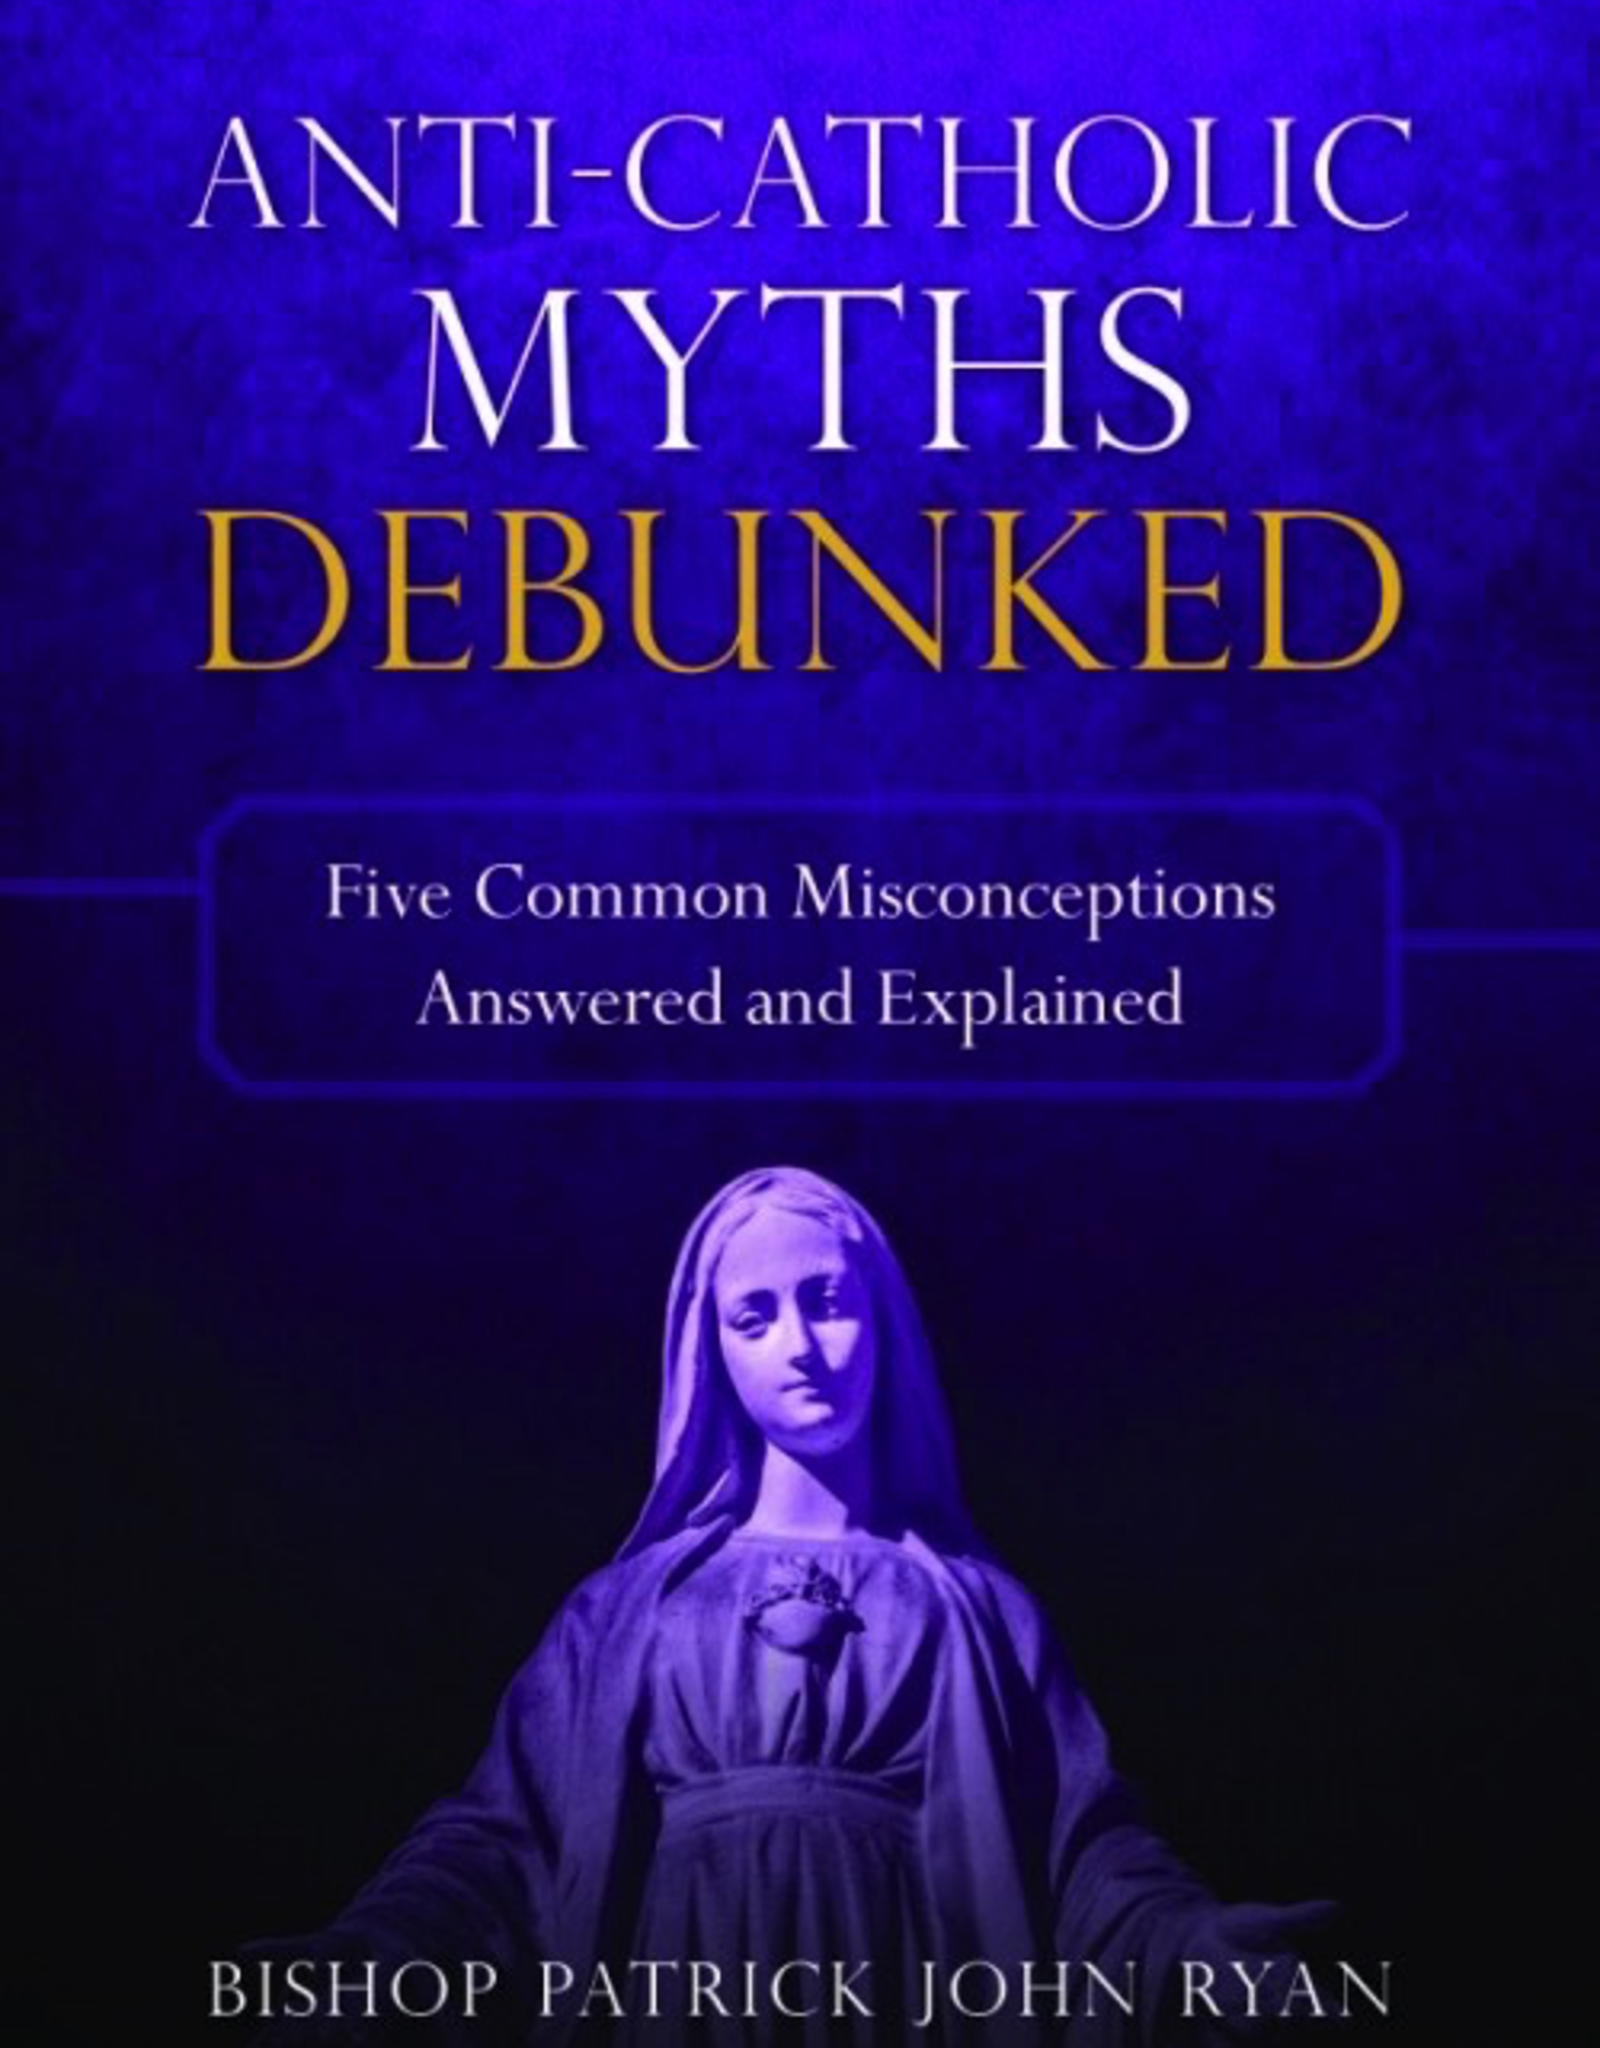 Sophia Institute Anti-Catholic Myths Debunked:  Five Common Misconceptions Answered and Explained, by Bishop Patrick John Ryan (paperback)